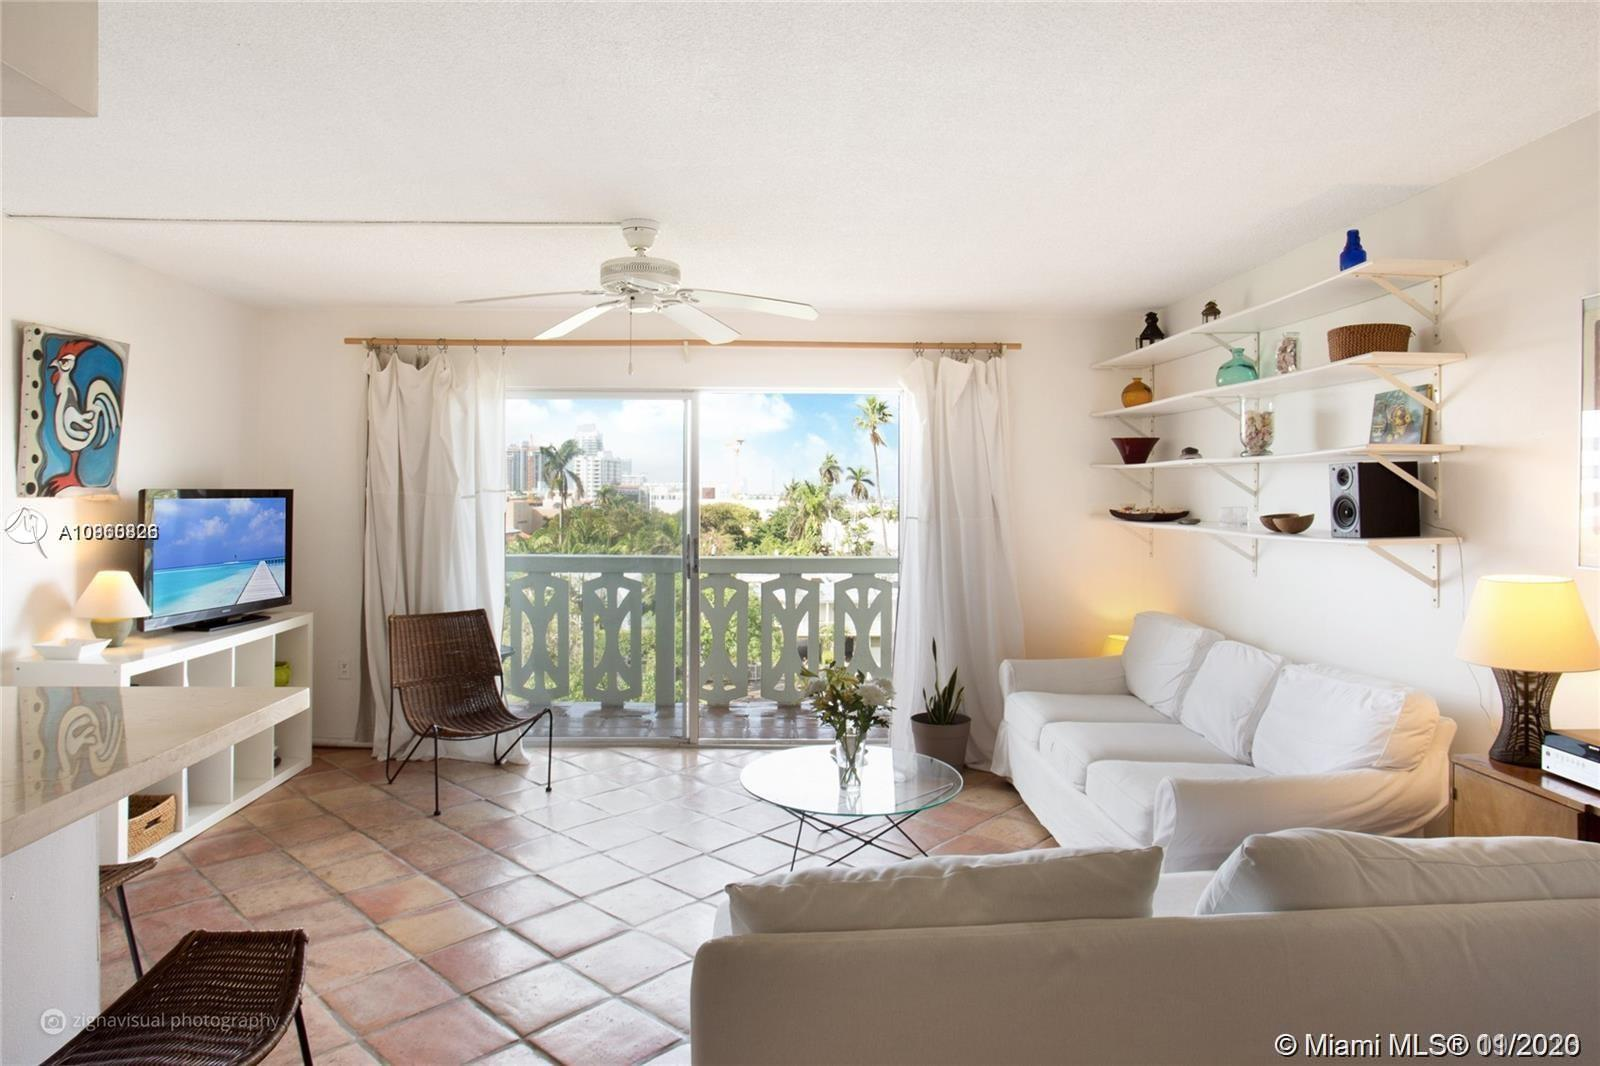 1732 Meridian Ave # 605, Miami Beach, Florida 33139, 1 Bedroom Bedrooms, ,1 BathroomBathrooms,Residential,For Sale,1732 Meridian Ave # 605,A10960826